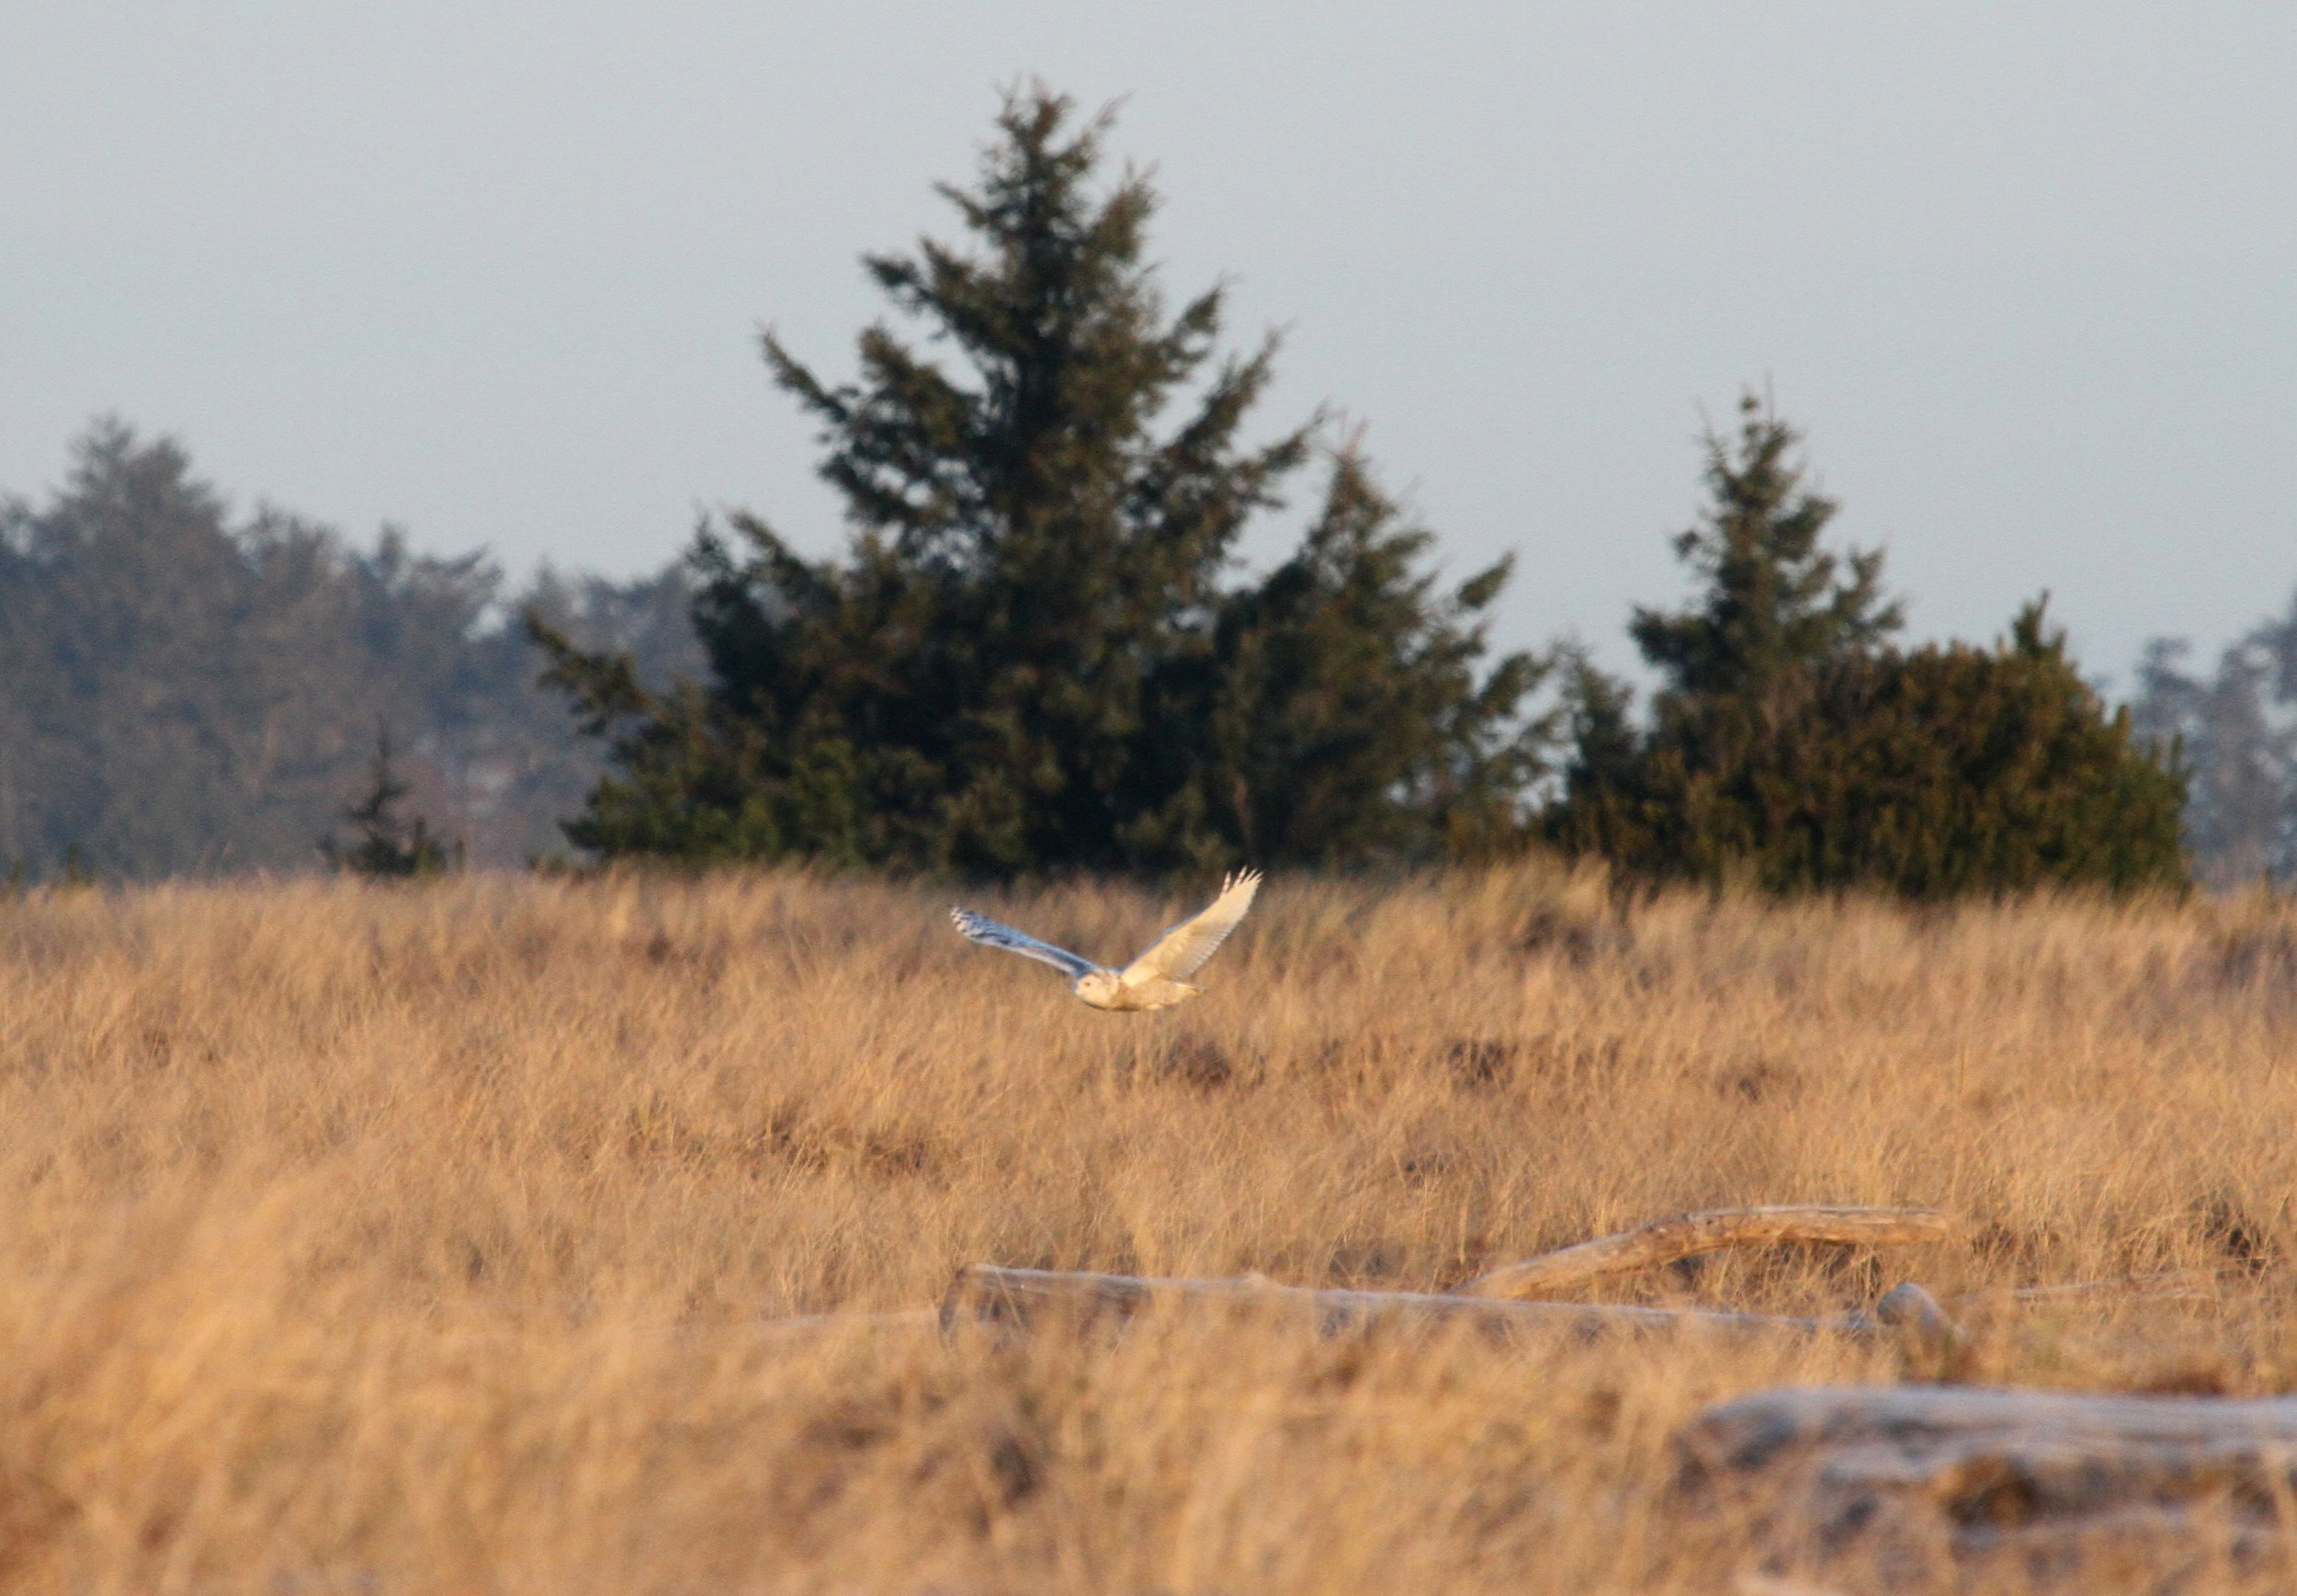 Snowy owl flying into the grassy bowl area at Damon Point. Tanya Pluth photo.